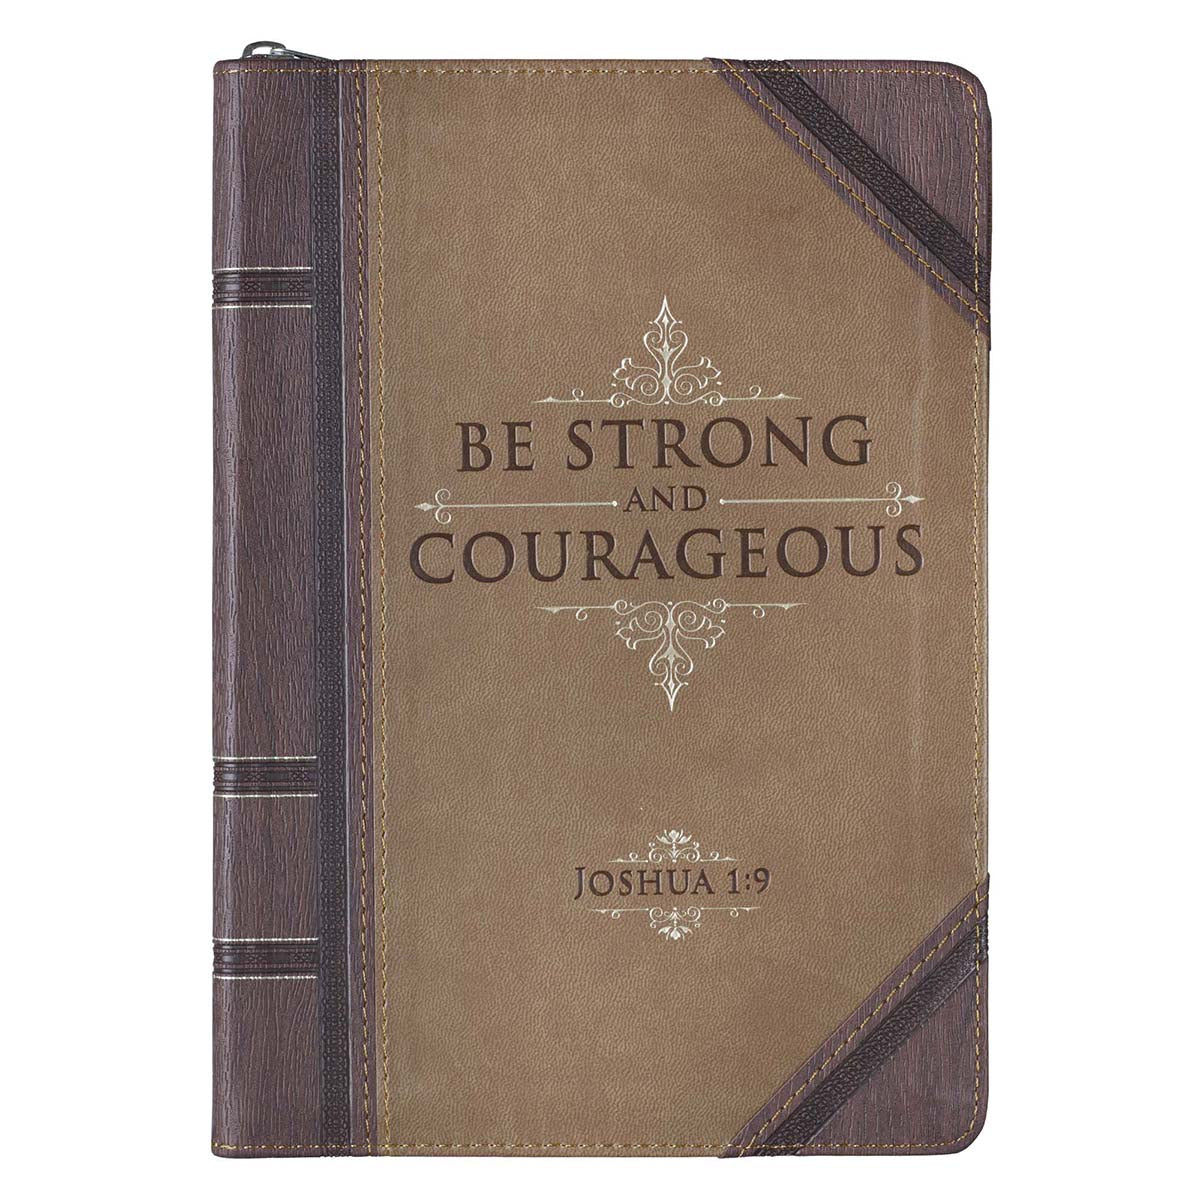 Strong and Courageous Antiqued Zippered Classic LuxLeather Journal - Joshua 1:9